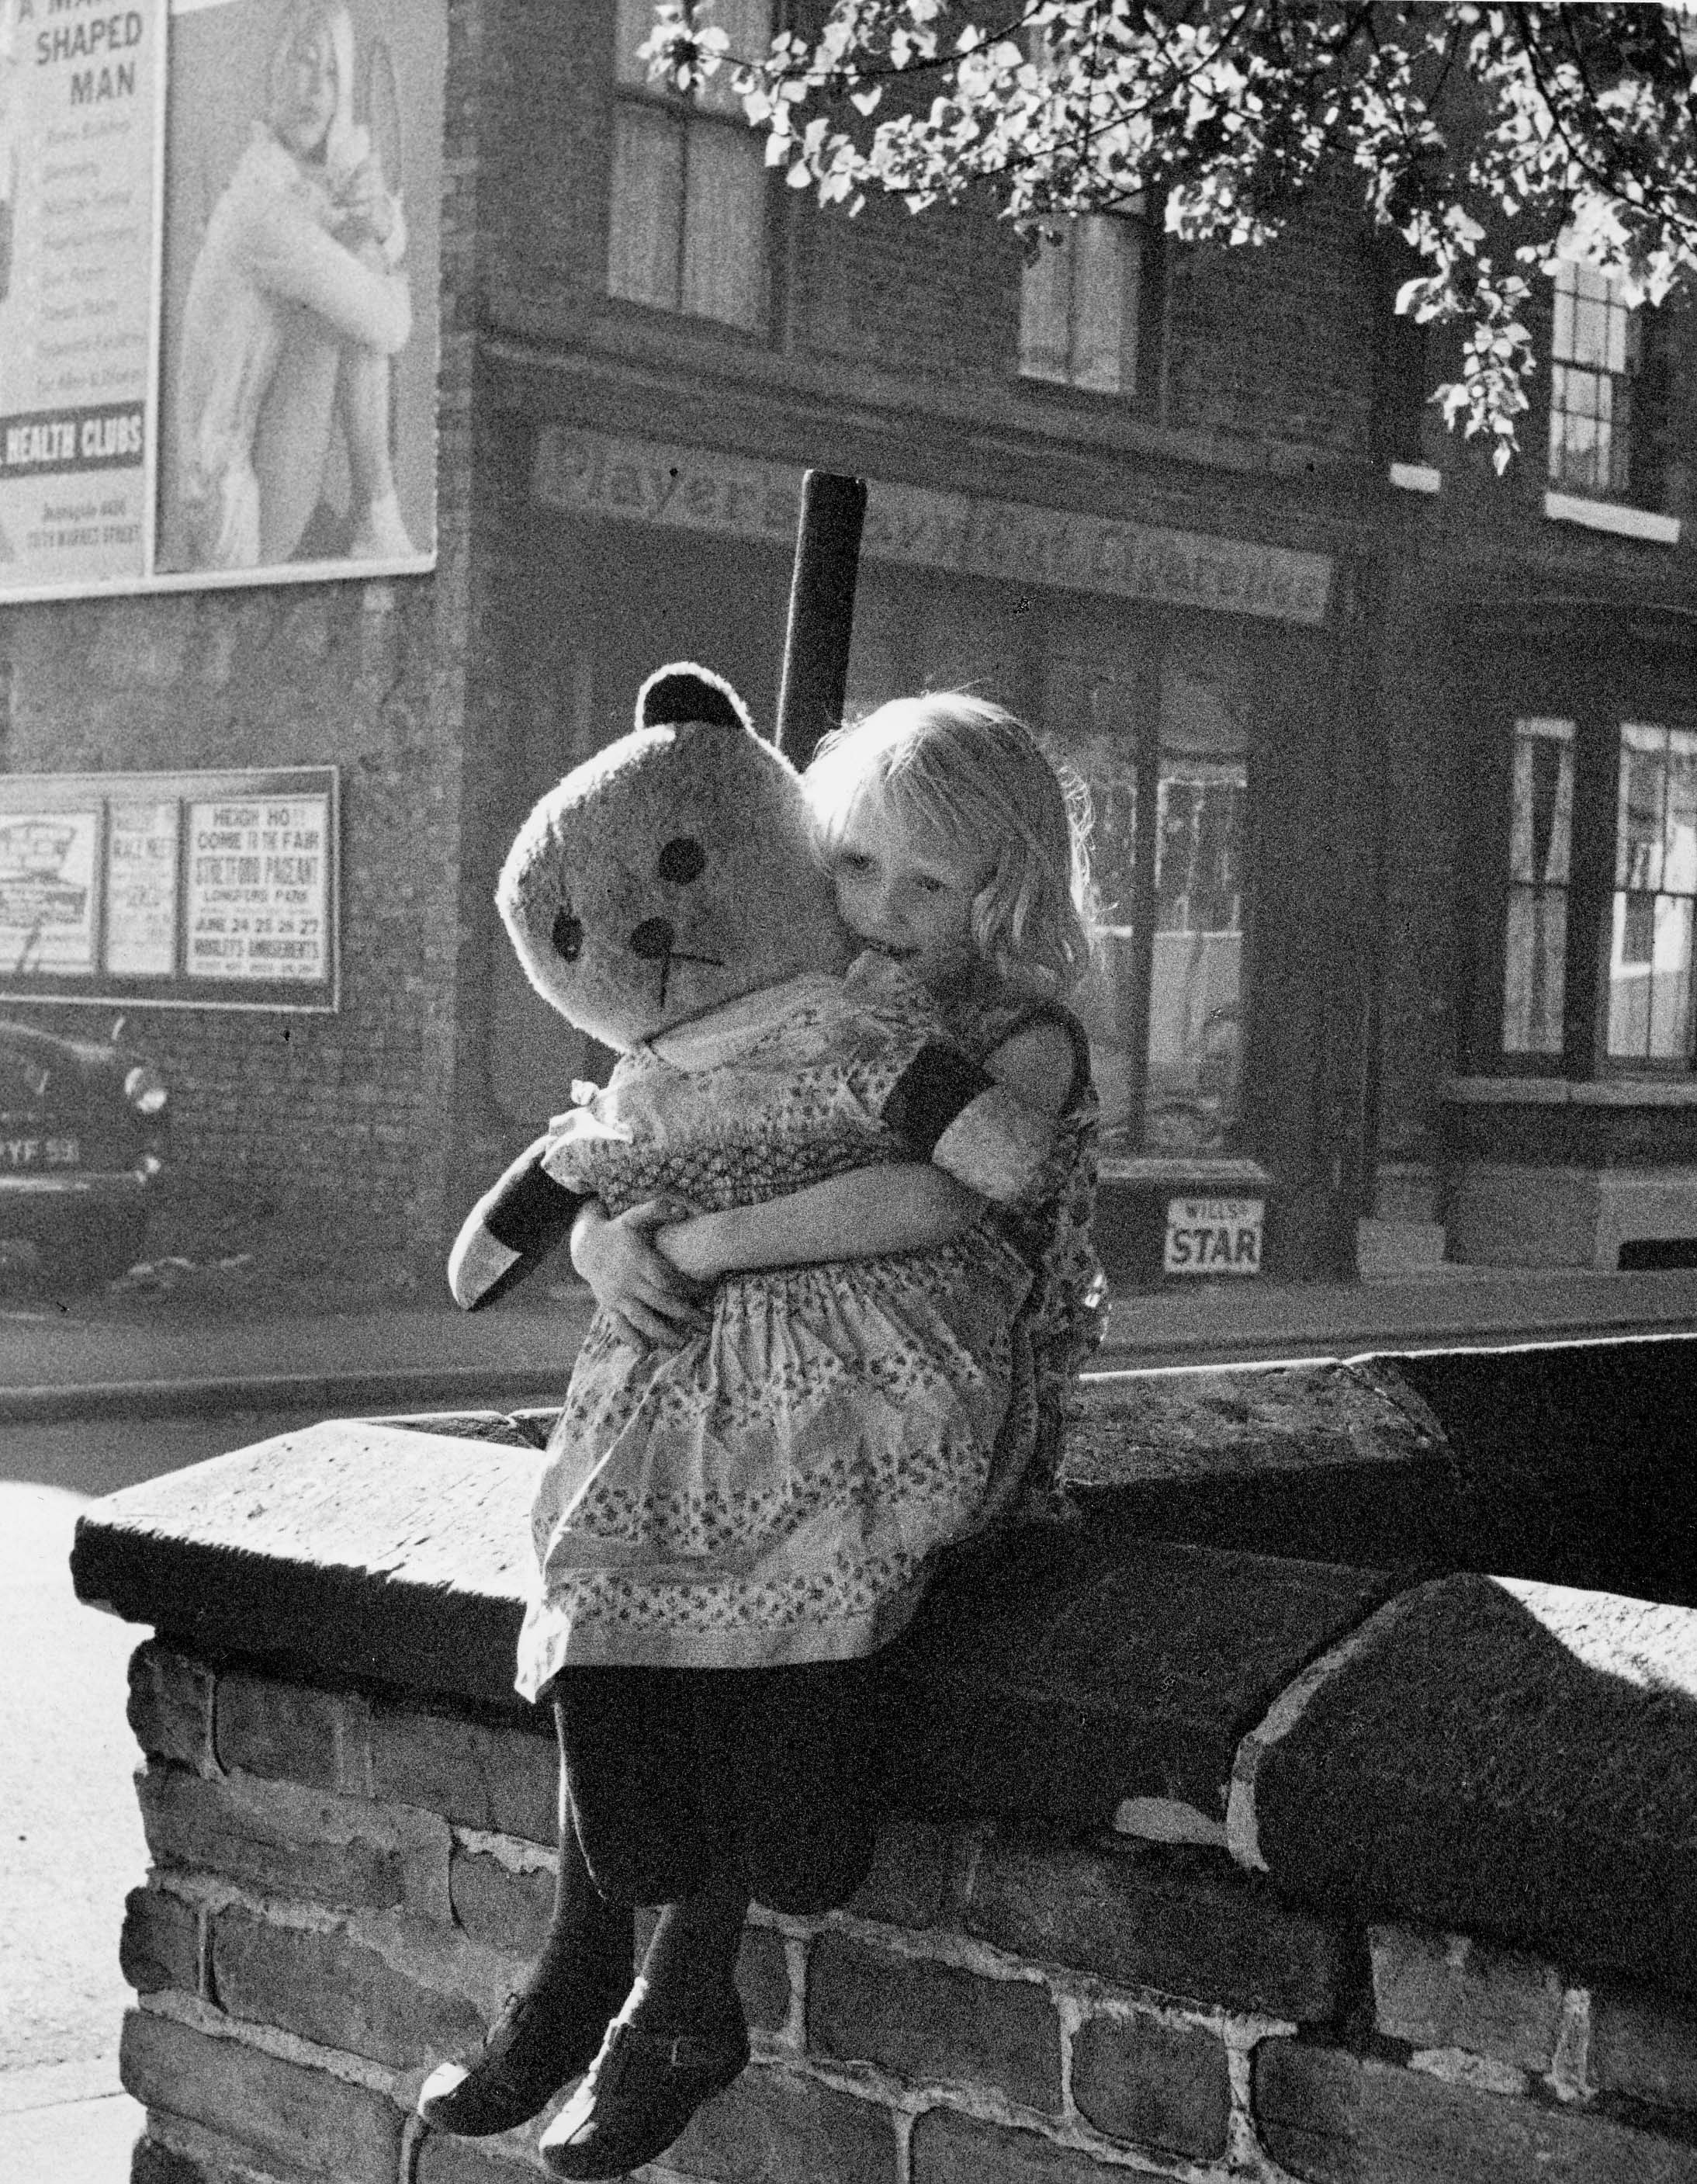 Girl & Teddy, Moss Side (1964)